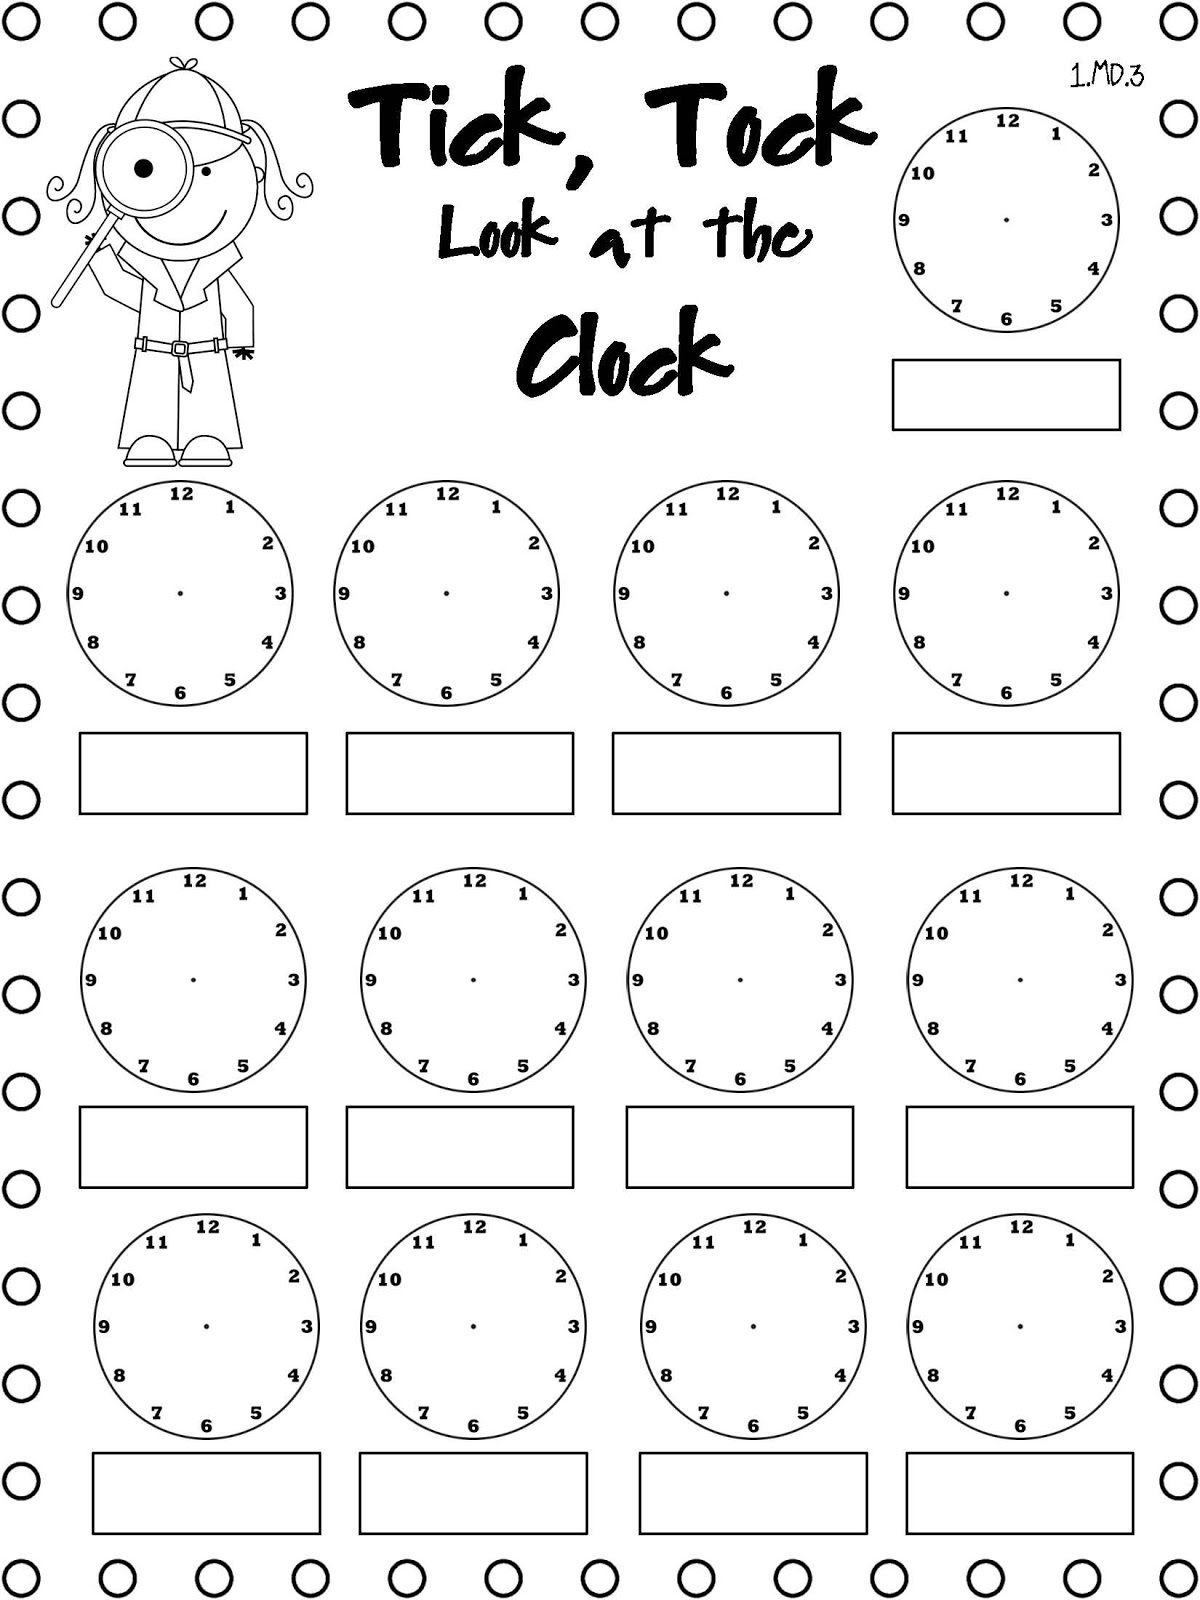 worksheet First Grade Time Worksheets time worksheets first grade free library download and e sy el psed w ksheets ctivity shelter